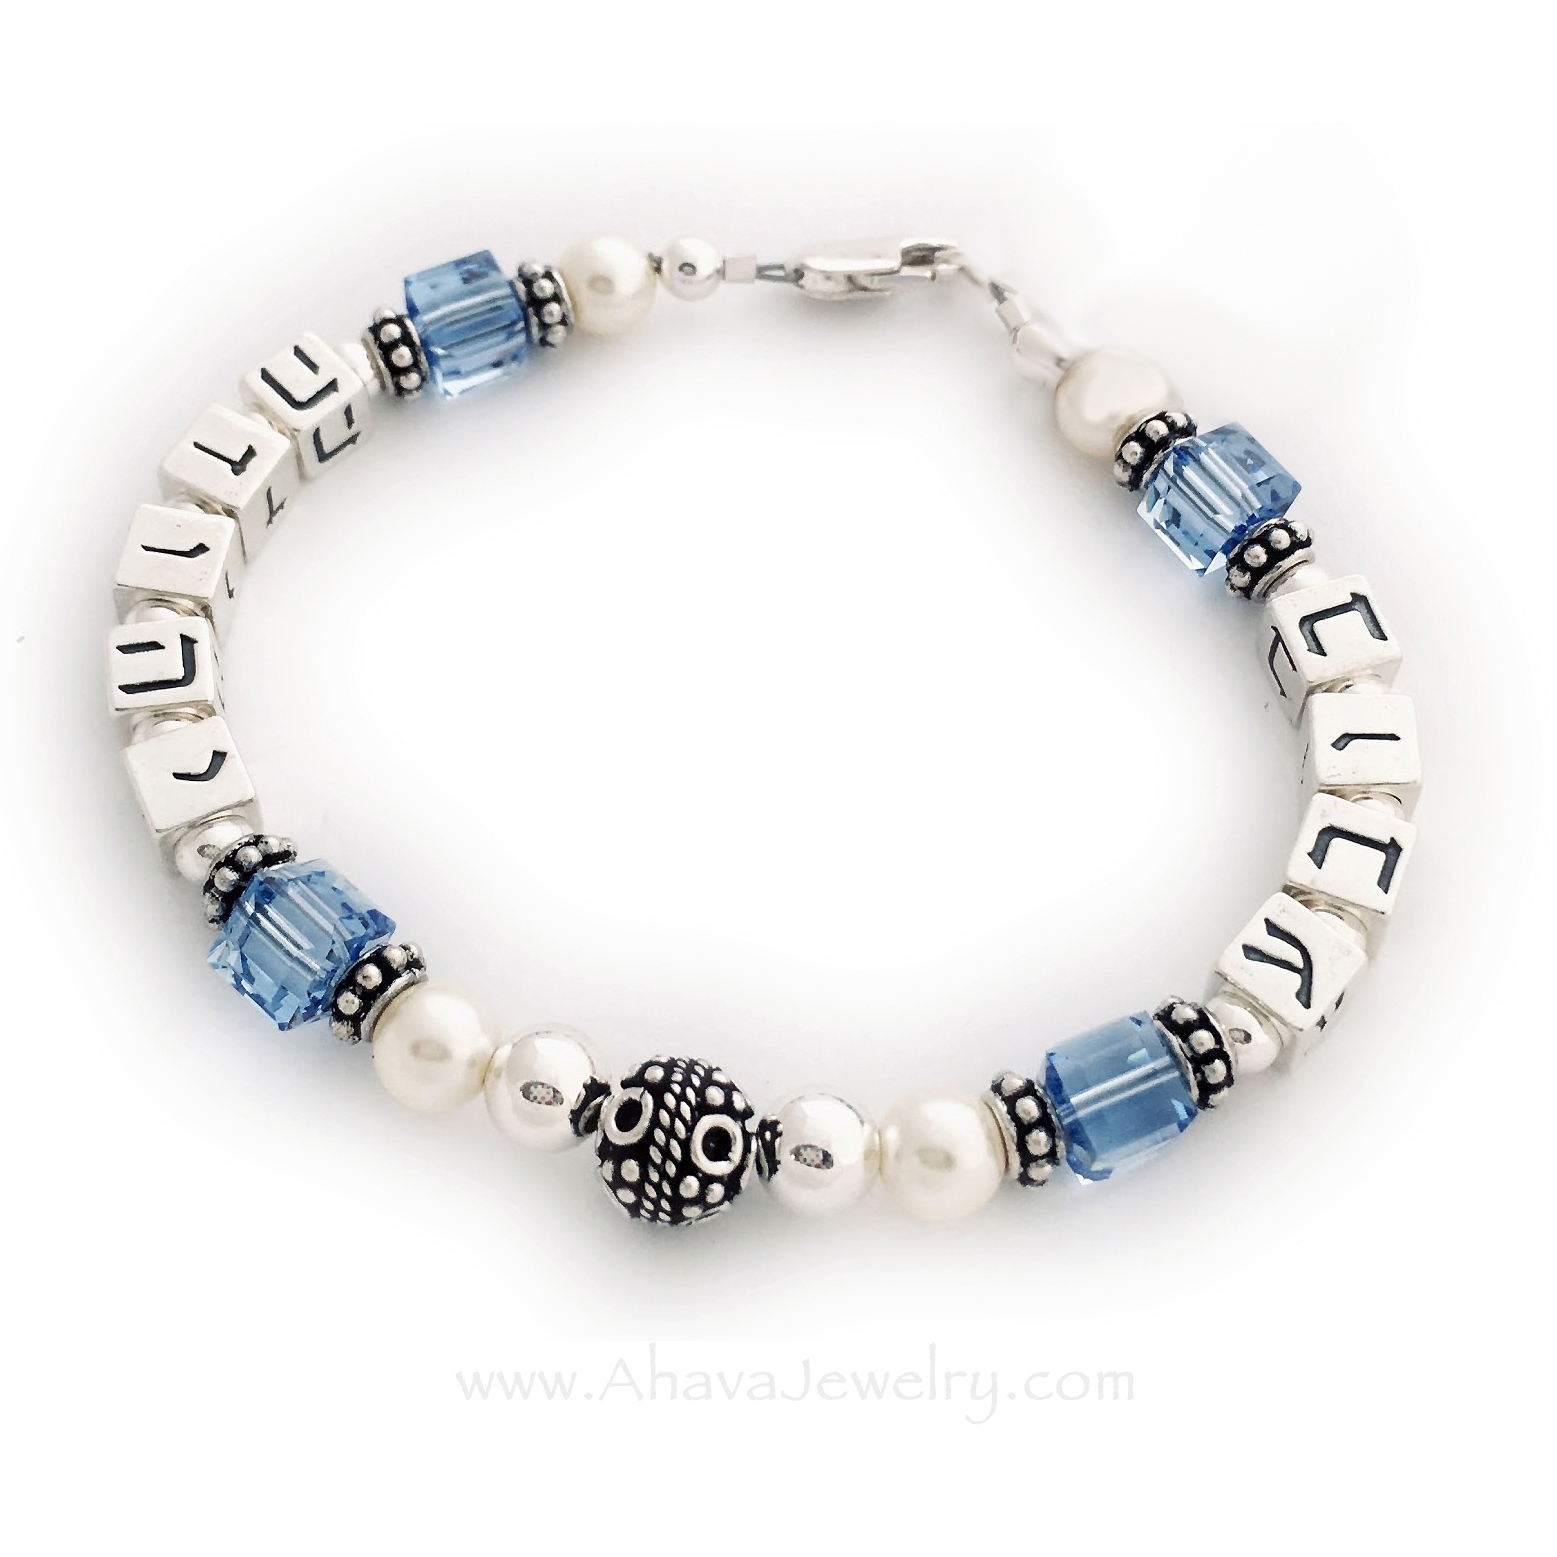 AJ-S6 - Bubbe & Grandchild's Name Bracelet - 2 Hebrew NamesThis Bubbe bracelet shows Bubbe in Hebrew and Yehuda (her grandson's Hebrew name). Shown with a lobster clasp with an extension and an add-on Star of David charm.